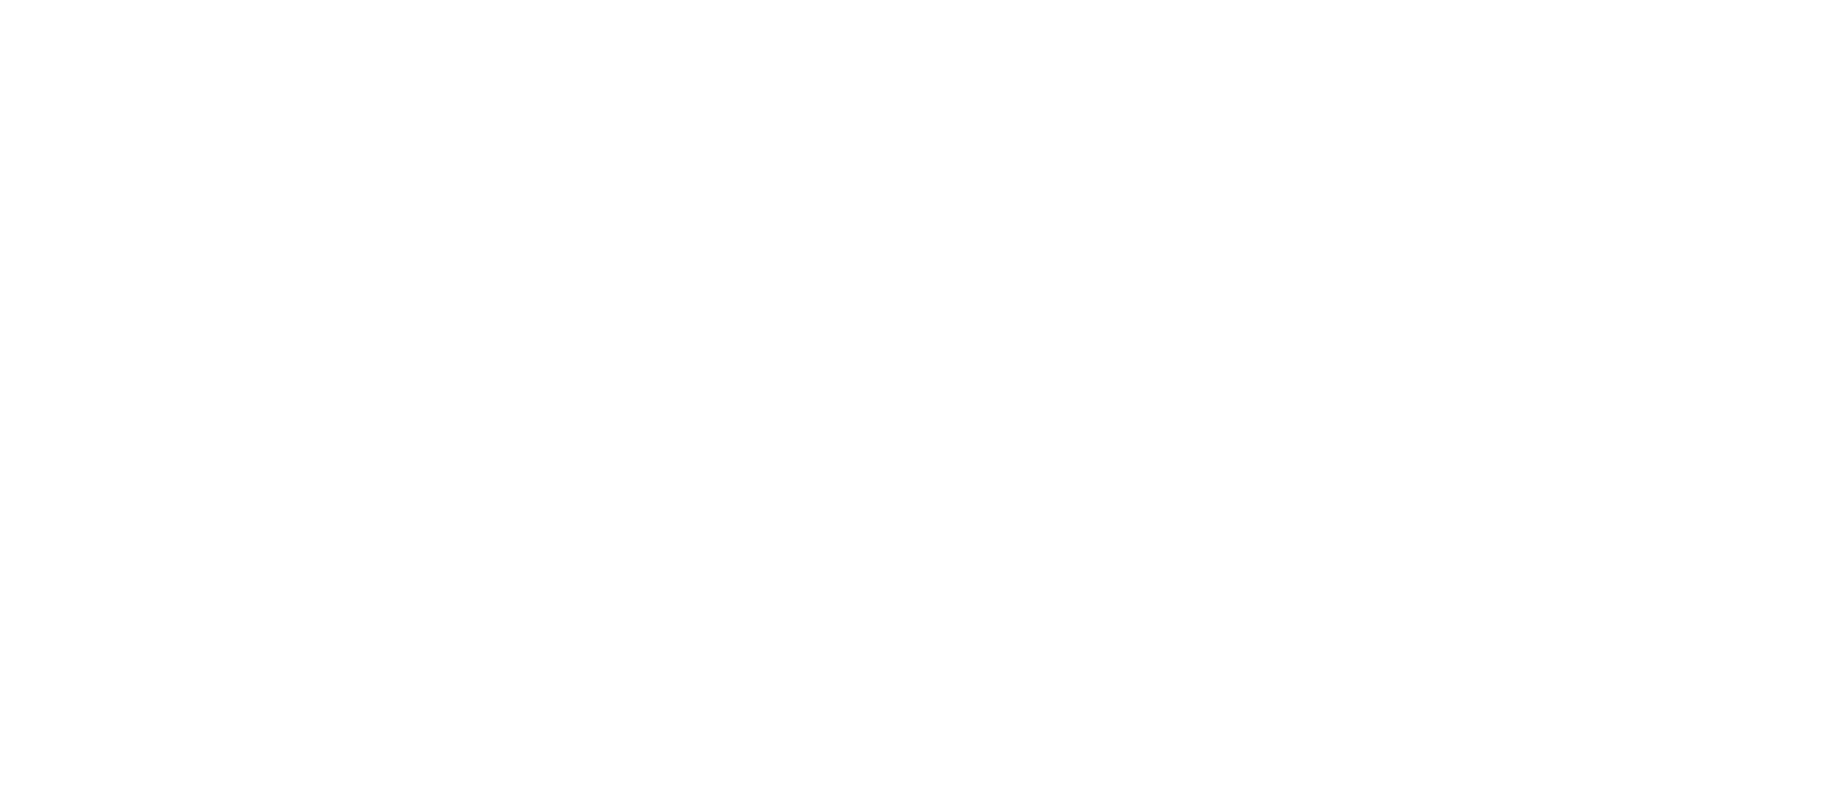 Arelia James Island Apartments